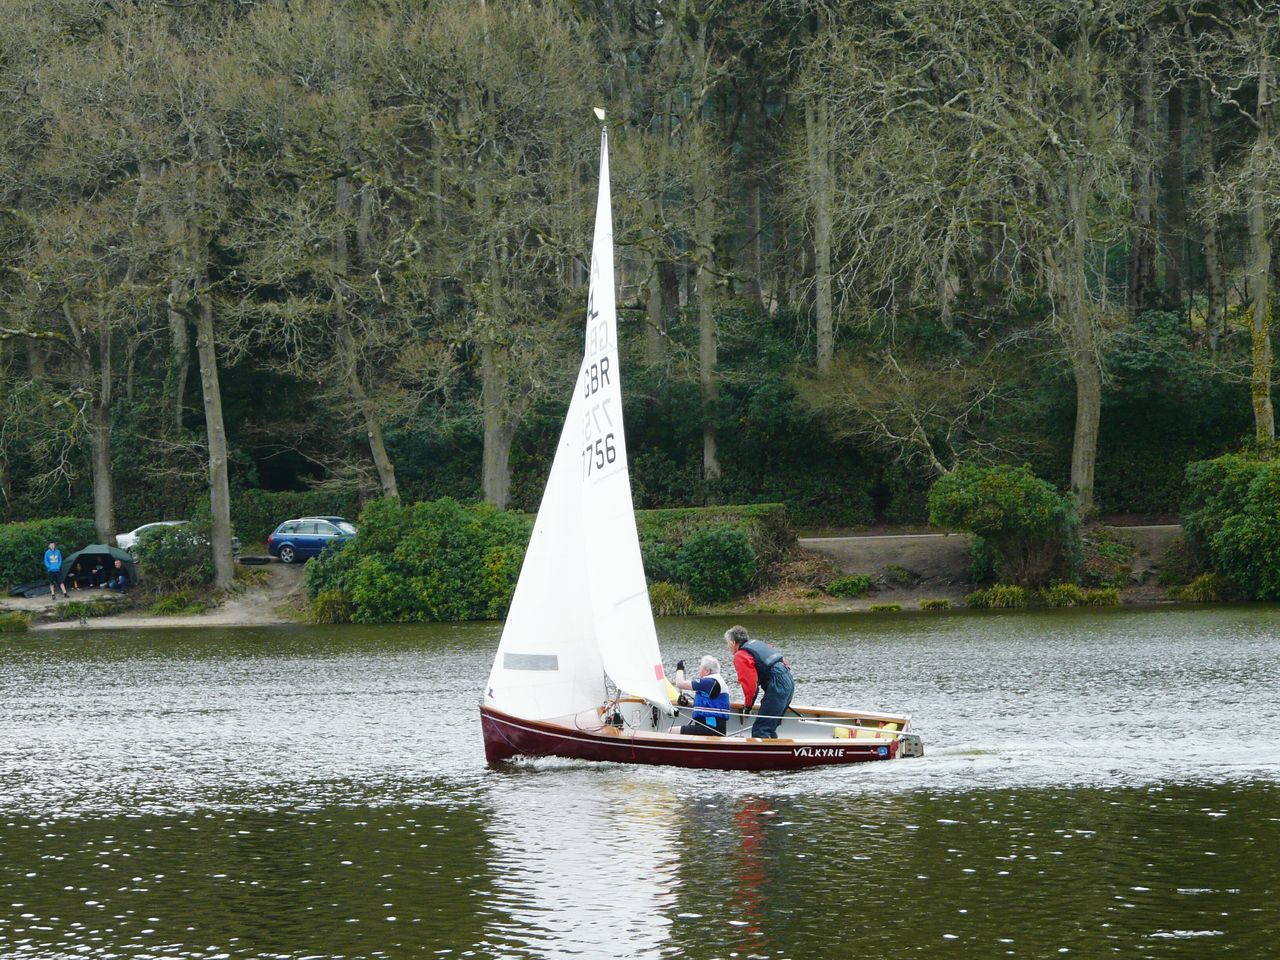 Sailing Boat Taking Photos Sail Boat Tacking Photography In Motion Boat Races Relaxing Taking Photos Lakeside Walk